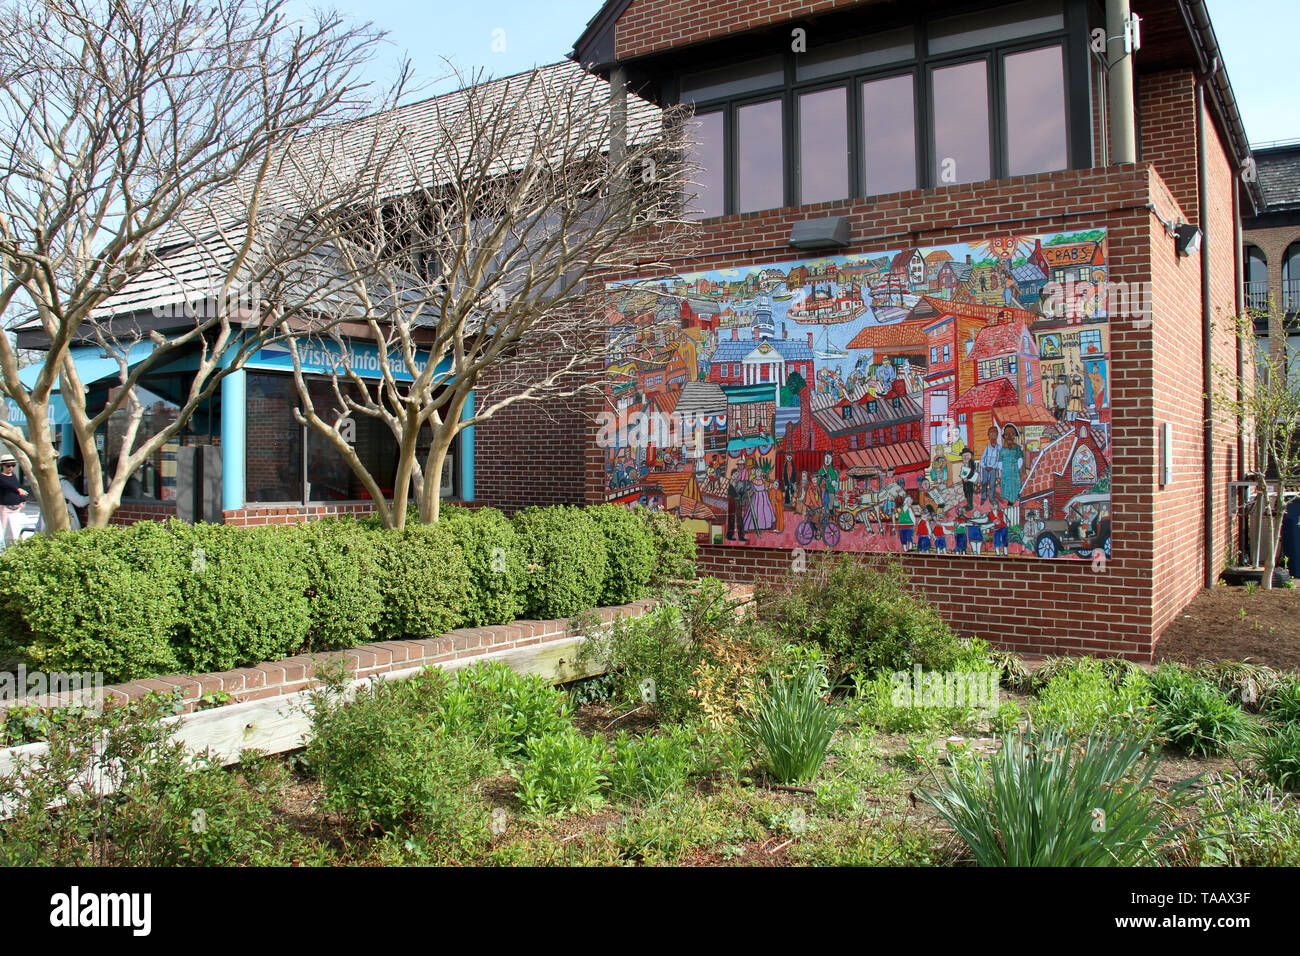 Public art  on the Harbormaster building next to the visitor information booth in downtown Annapolis, MD, USA - Stock Image